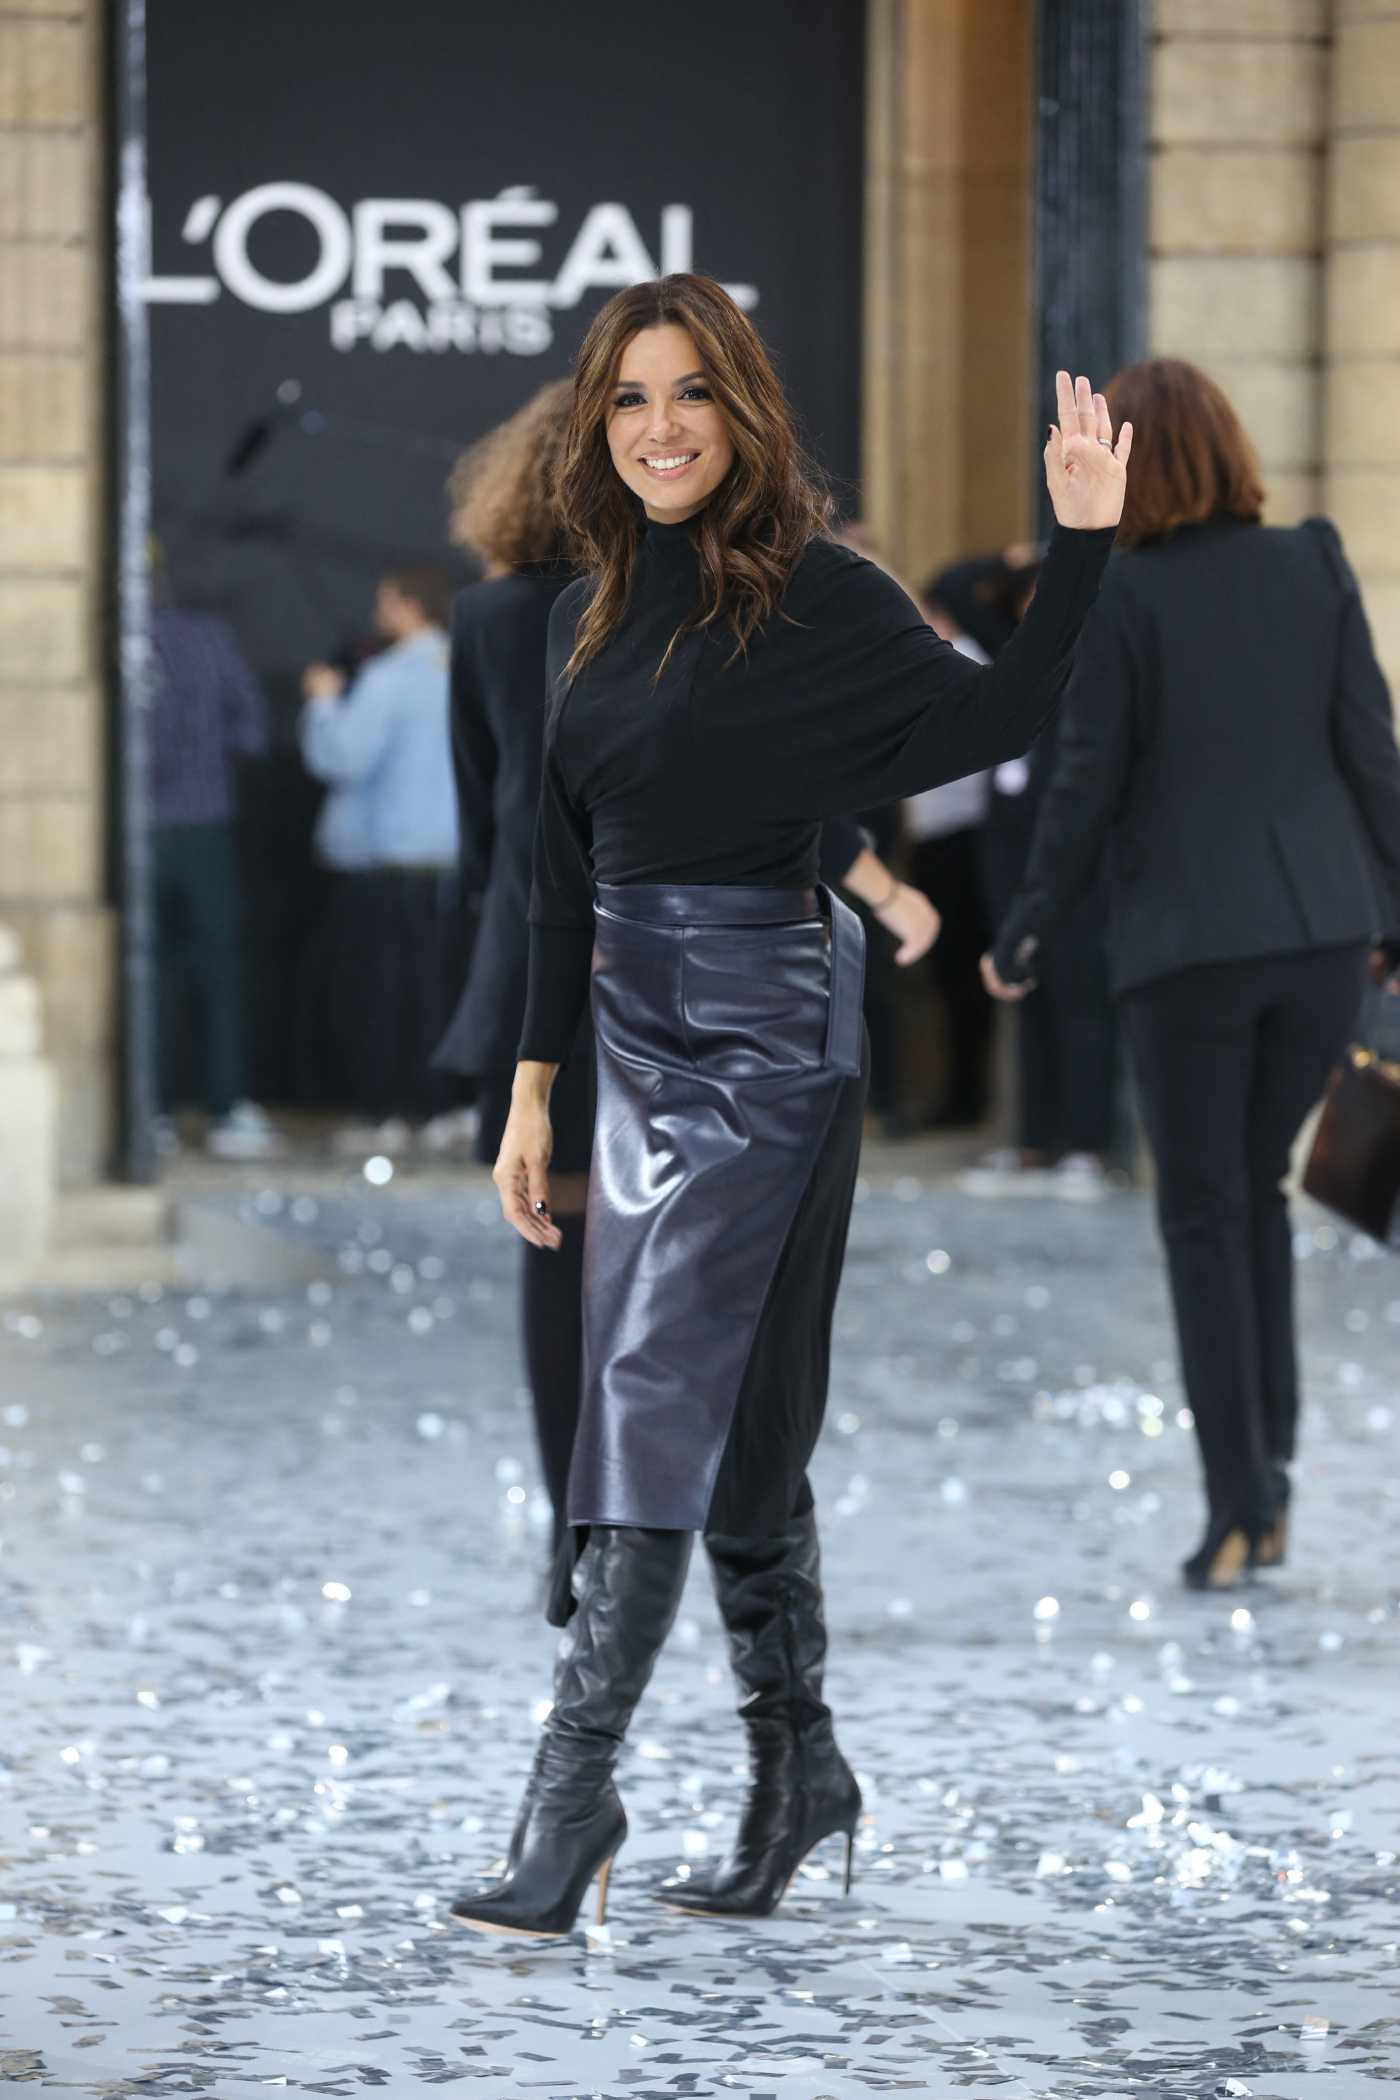 Eva Longoria Arrives at the Le Defile L'Oreal Paris Show in Paris 09/28/2019